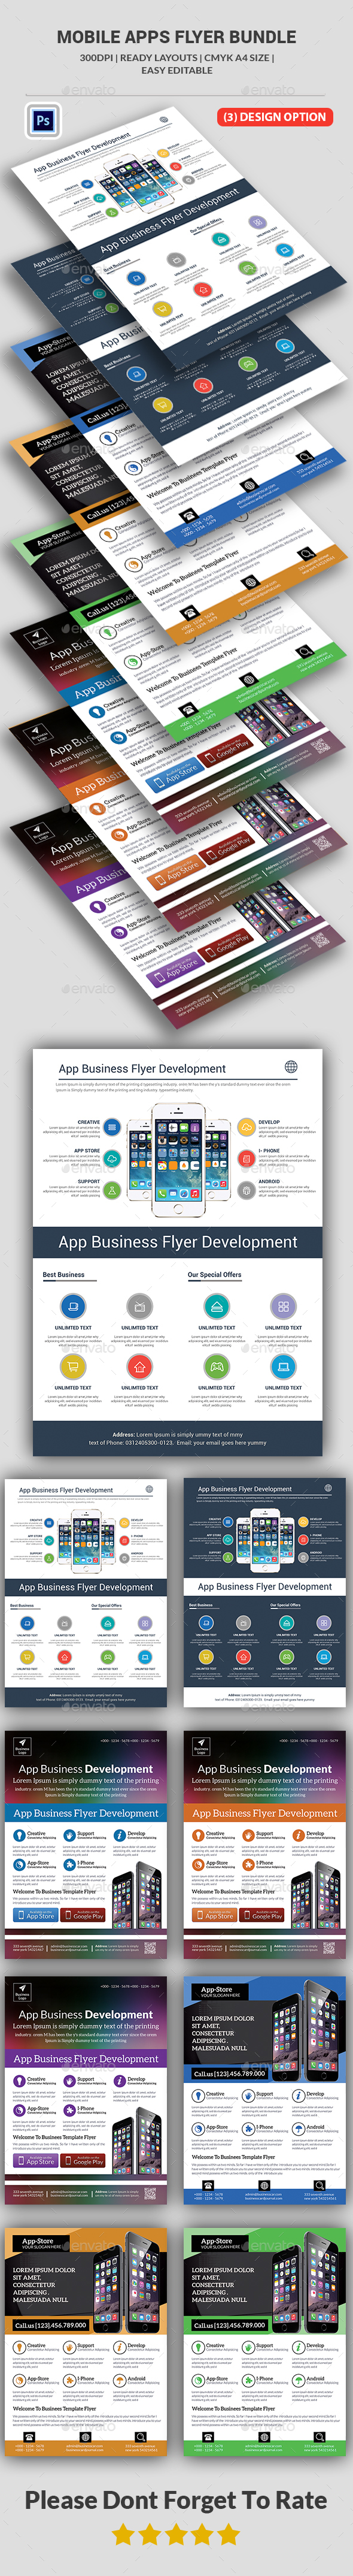 Mobile App Flyers Bundle - Corporate Flyers